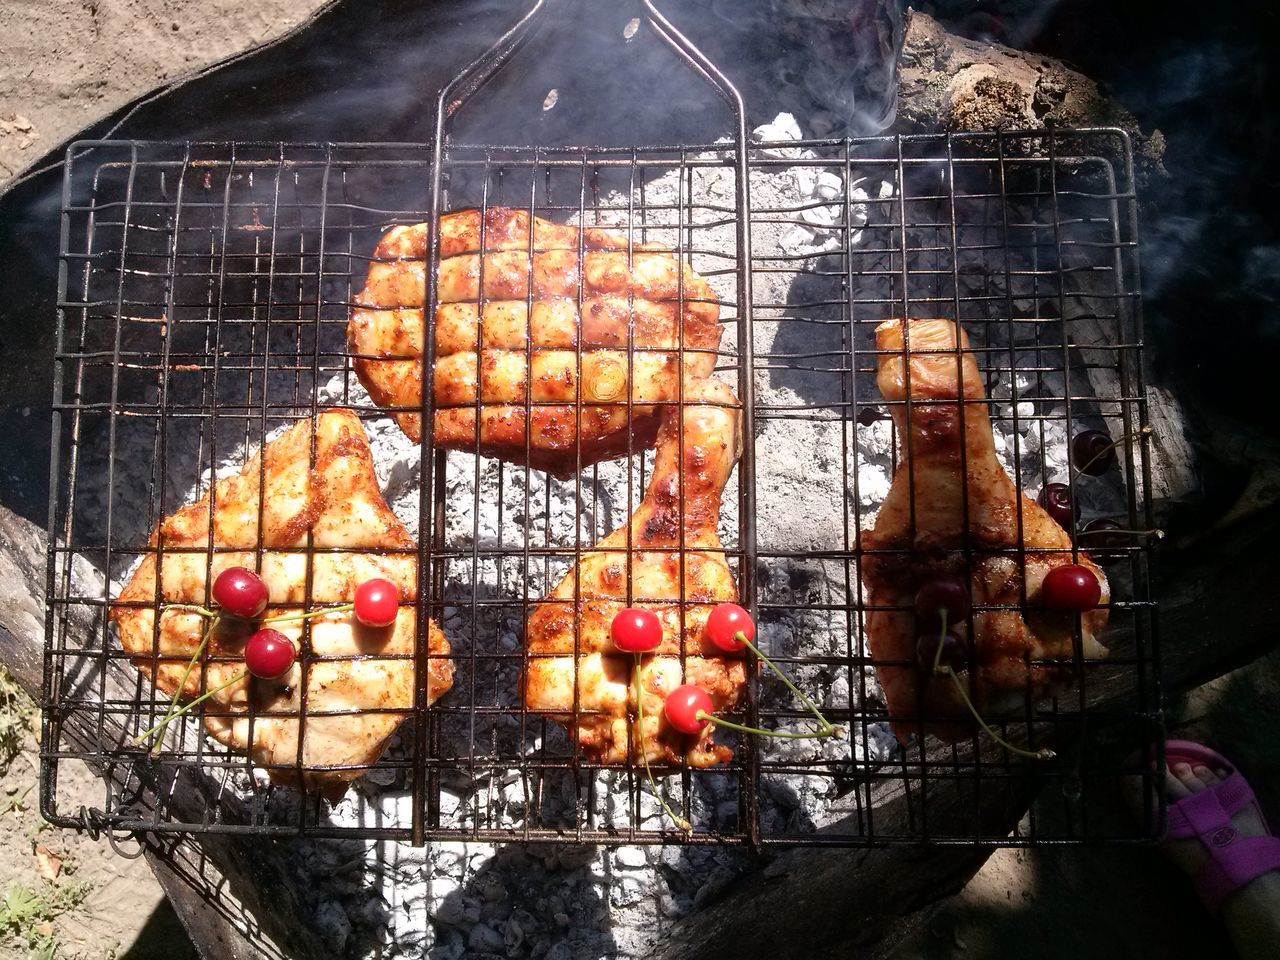 barbecue, barbecue grill, food and drink, preparation, grilled, food, day, no people, outdoors, meat, metal grate, healthy eating, freshness, close-up